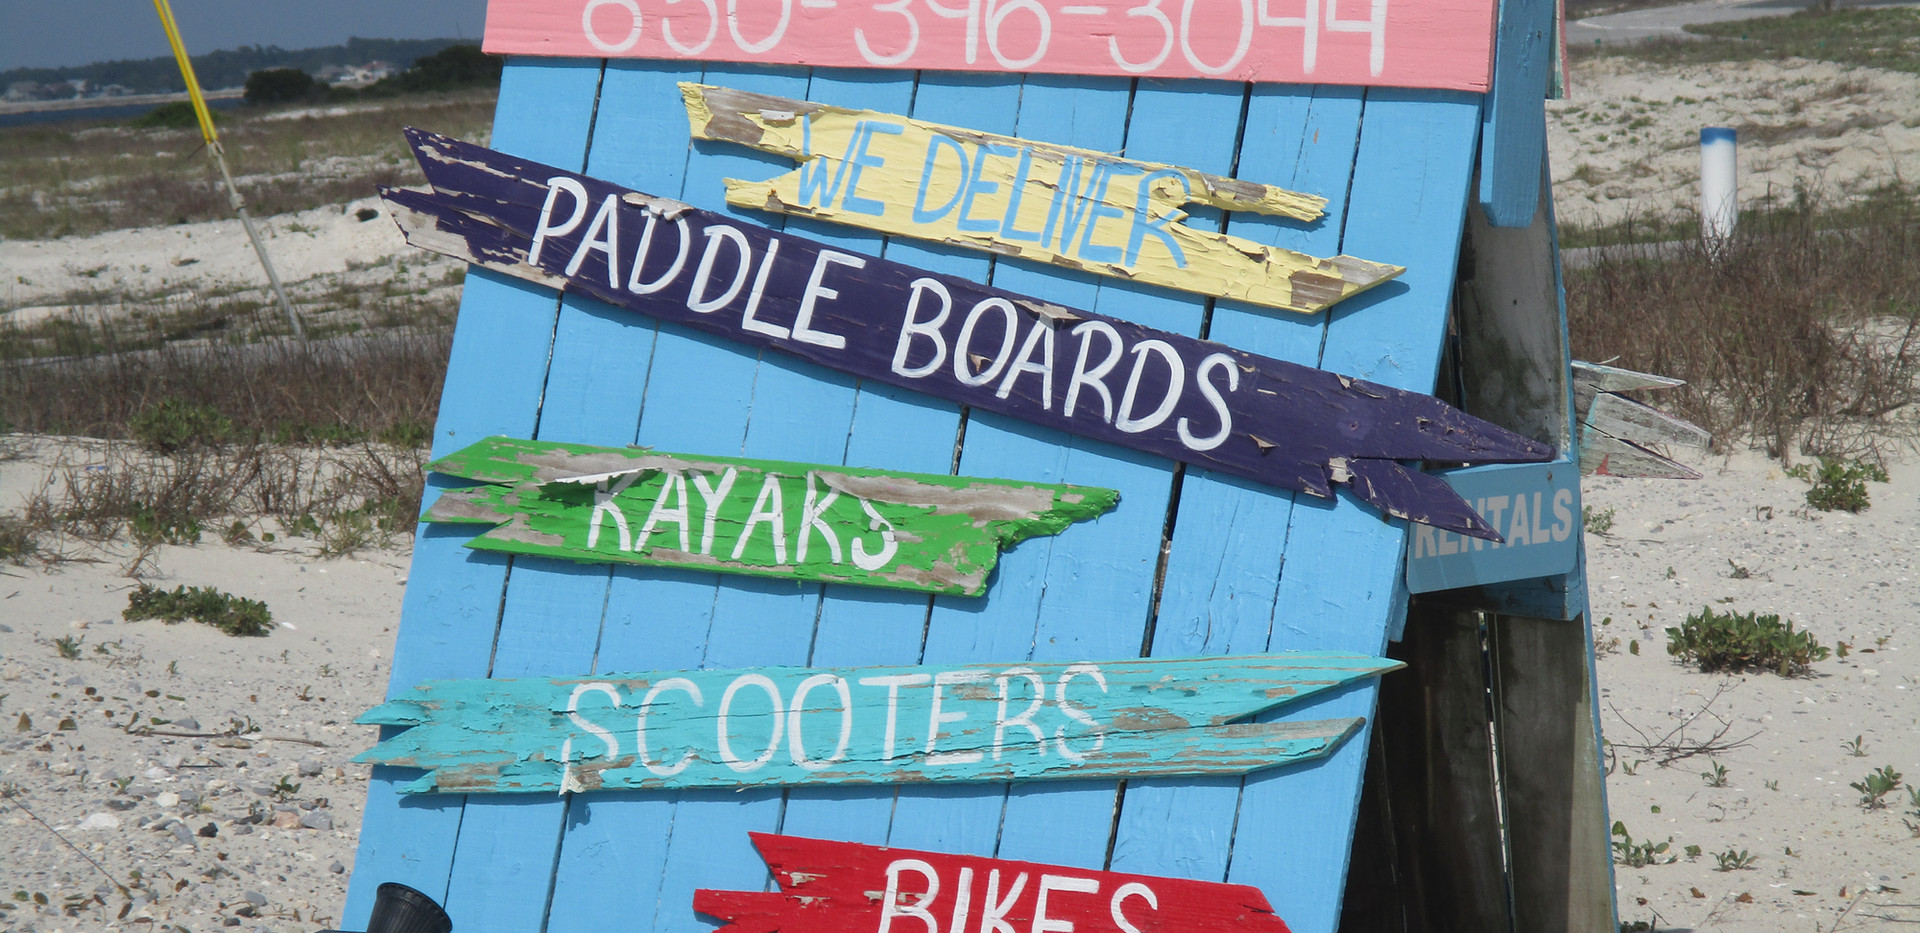 Kayaks, paddle board and other rentals